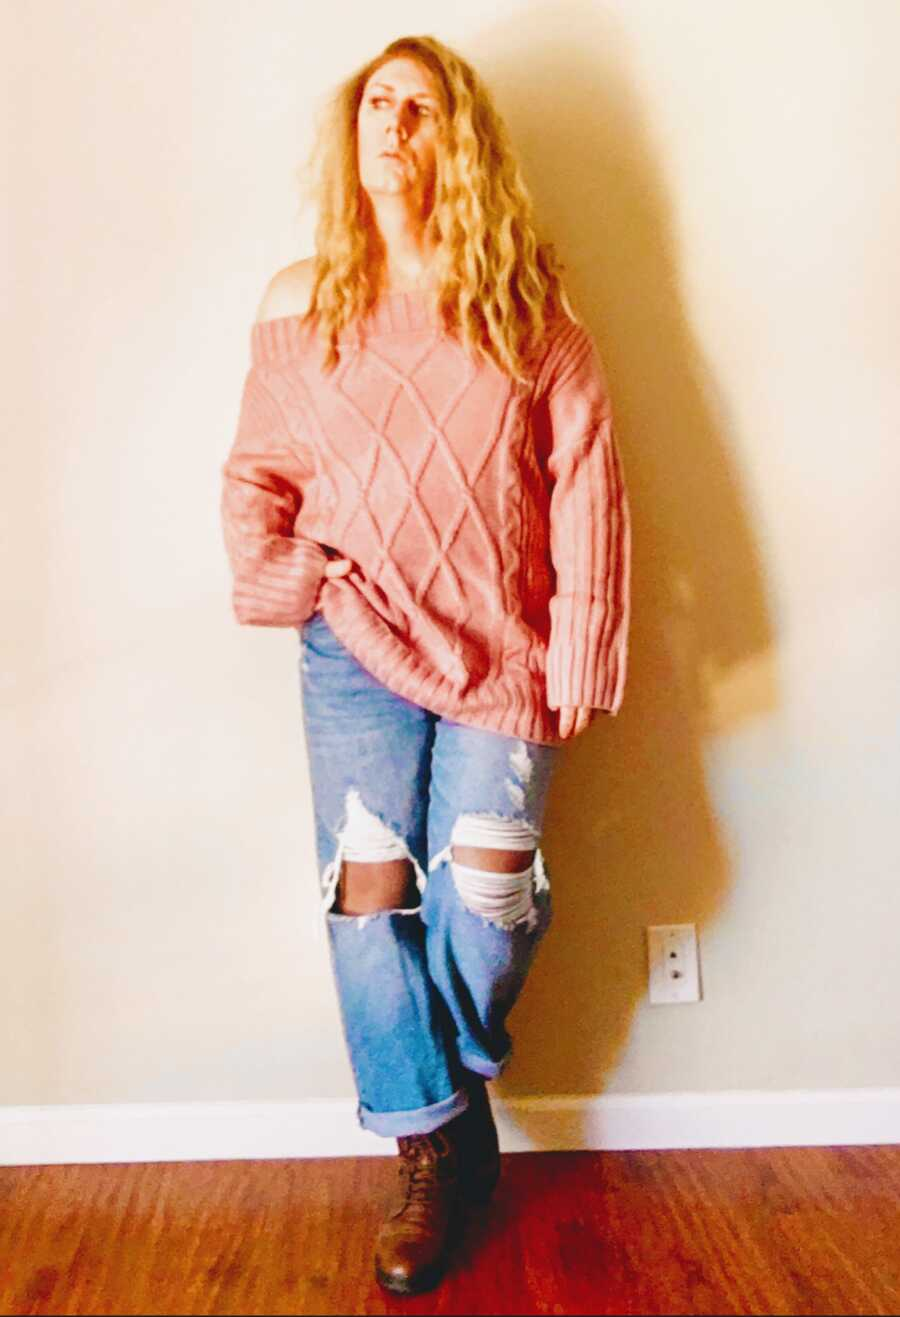 trans woman wearing a pink shirt and ripped jeans